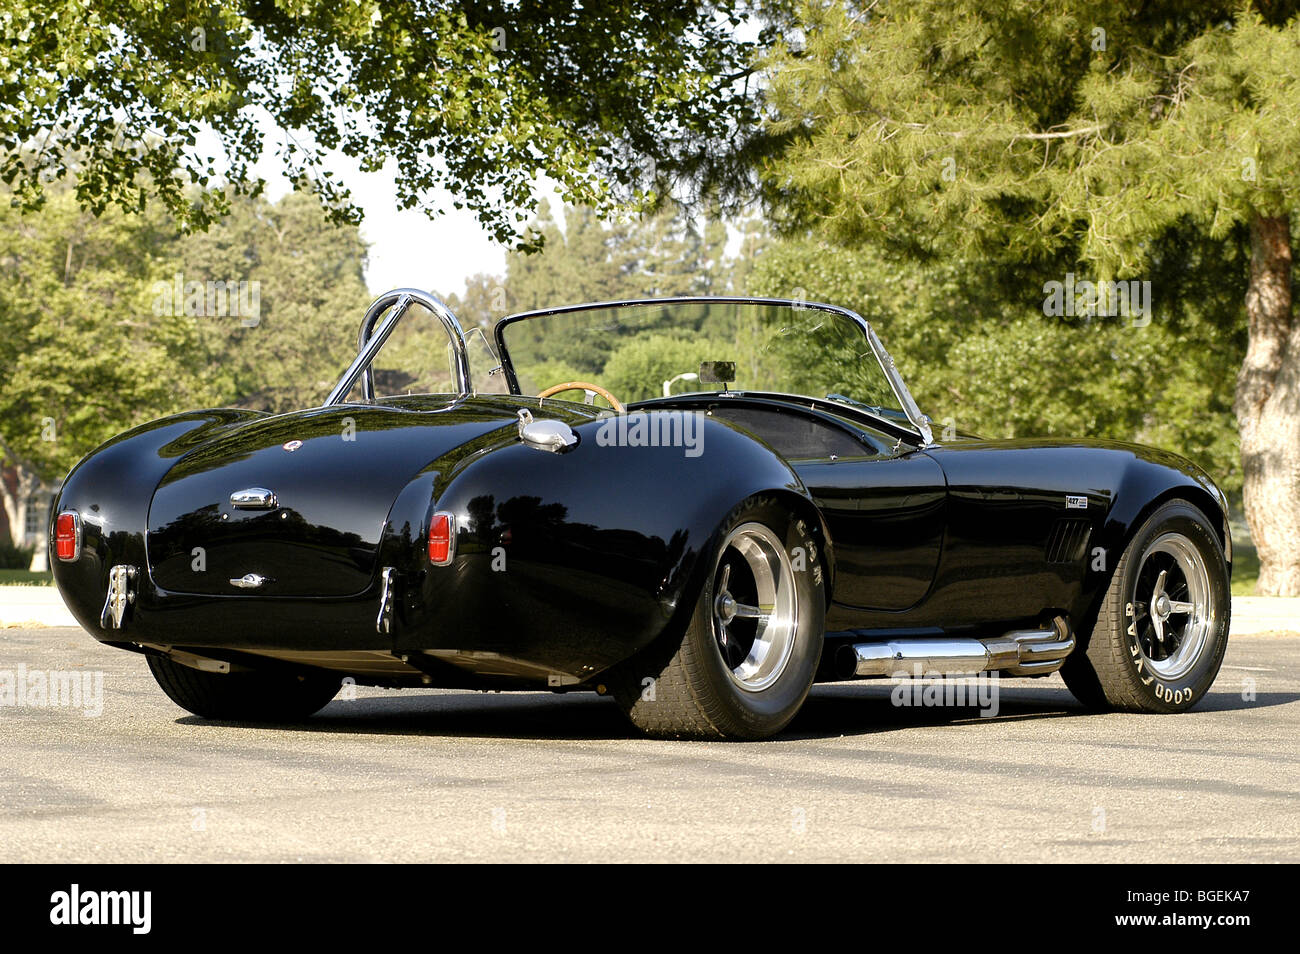 1967 Shelby cobra 427 in black this is a real Shelby car